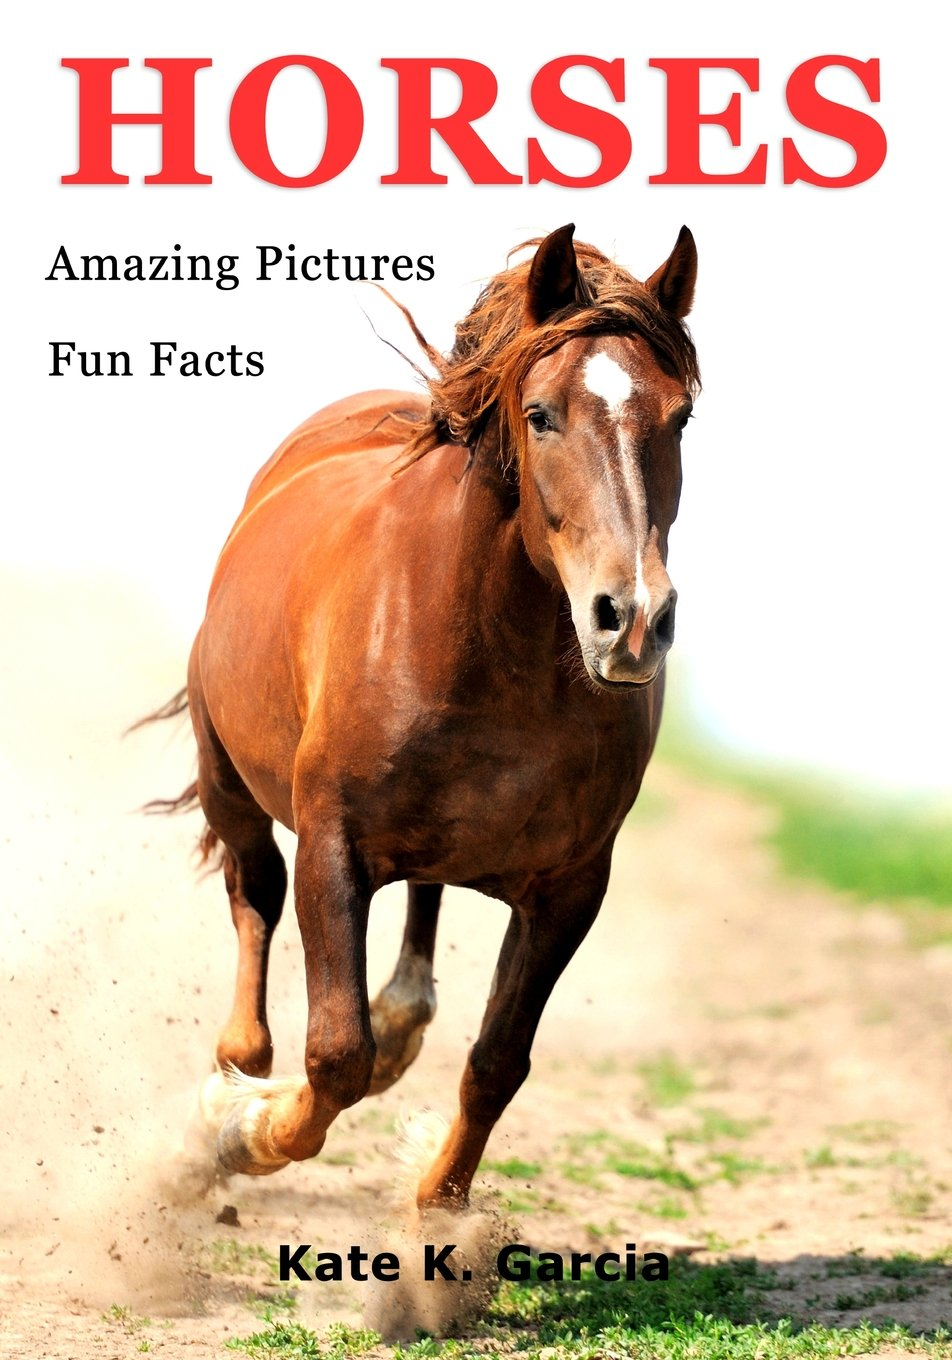 Download Horses: Kids book of fun facts & amazing pictures on animals in nature PDF